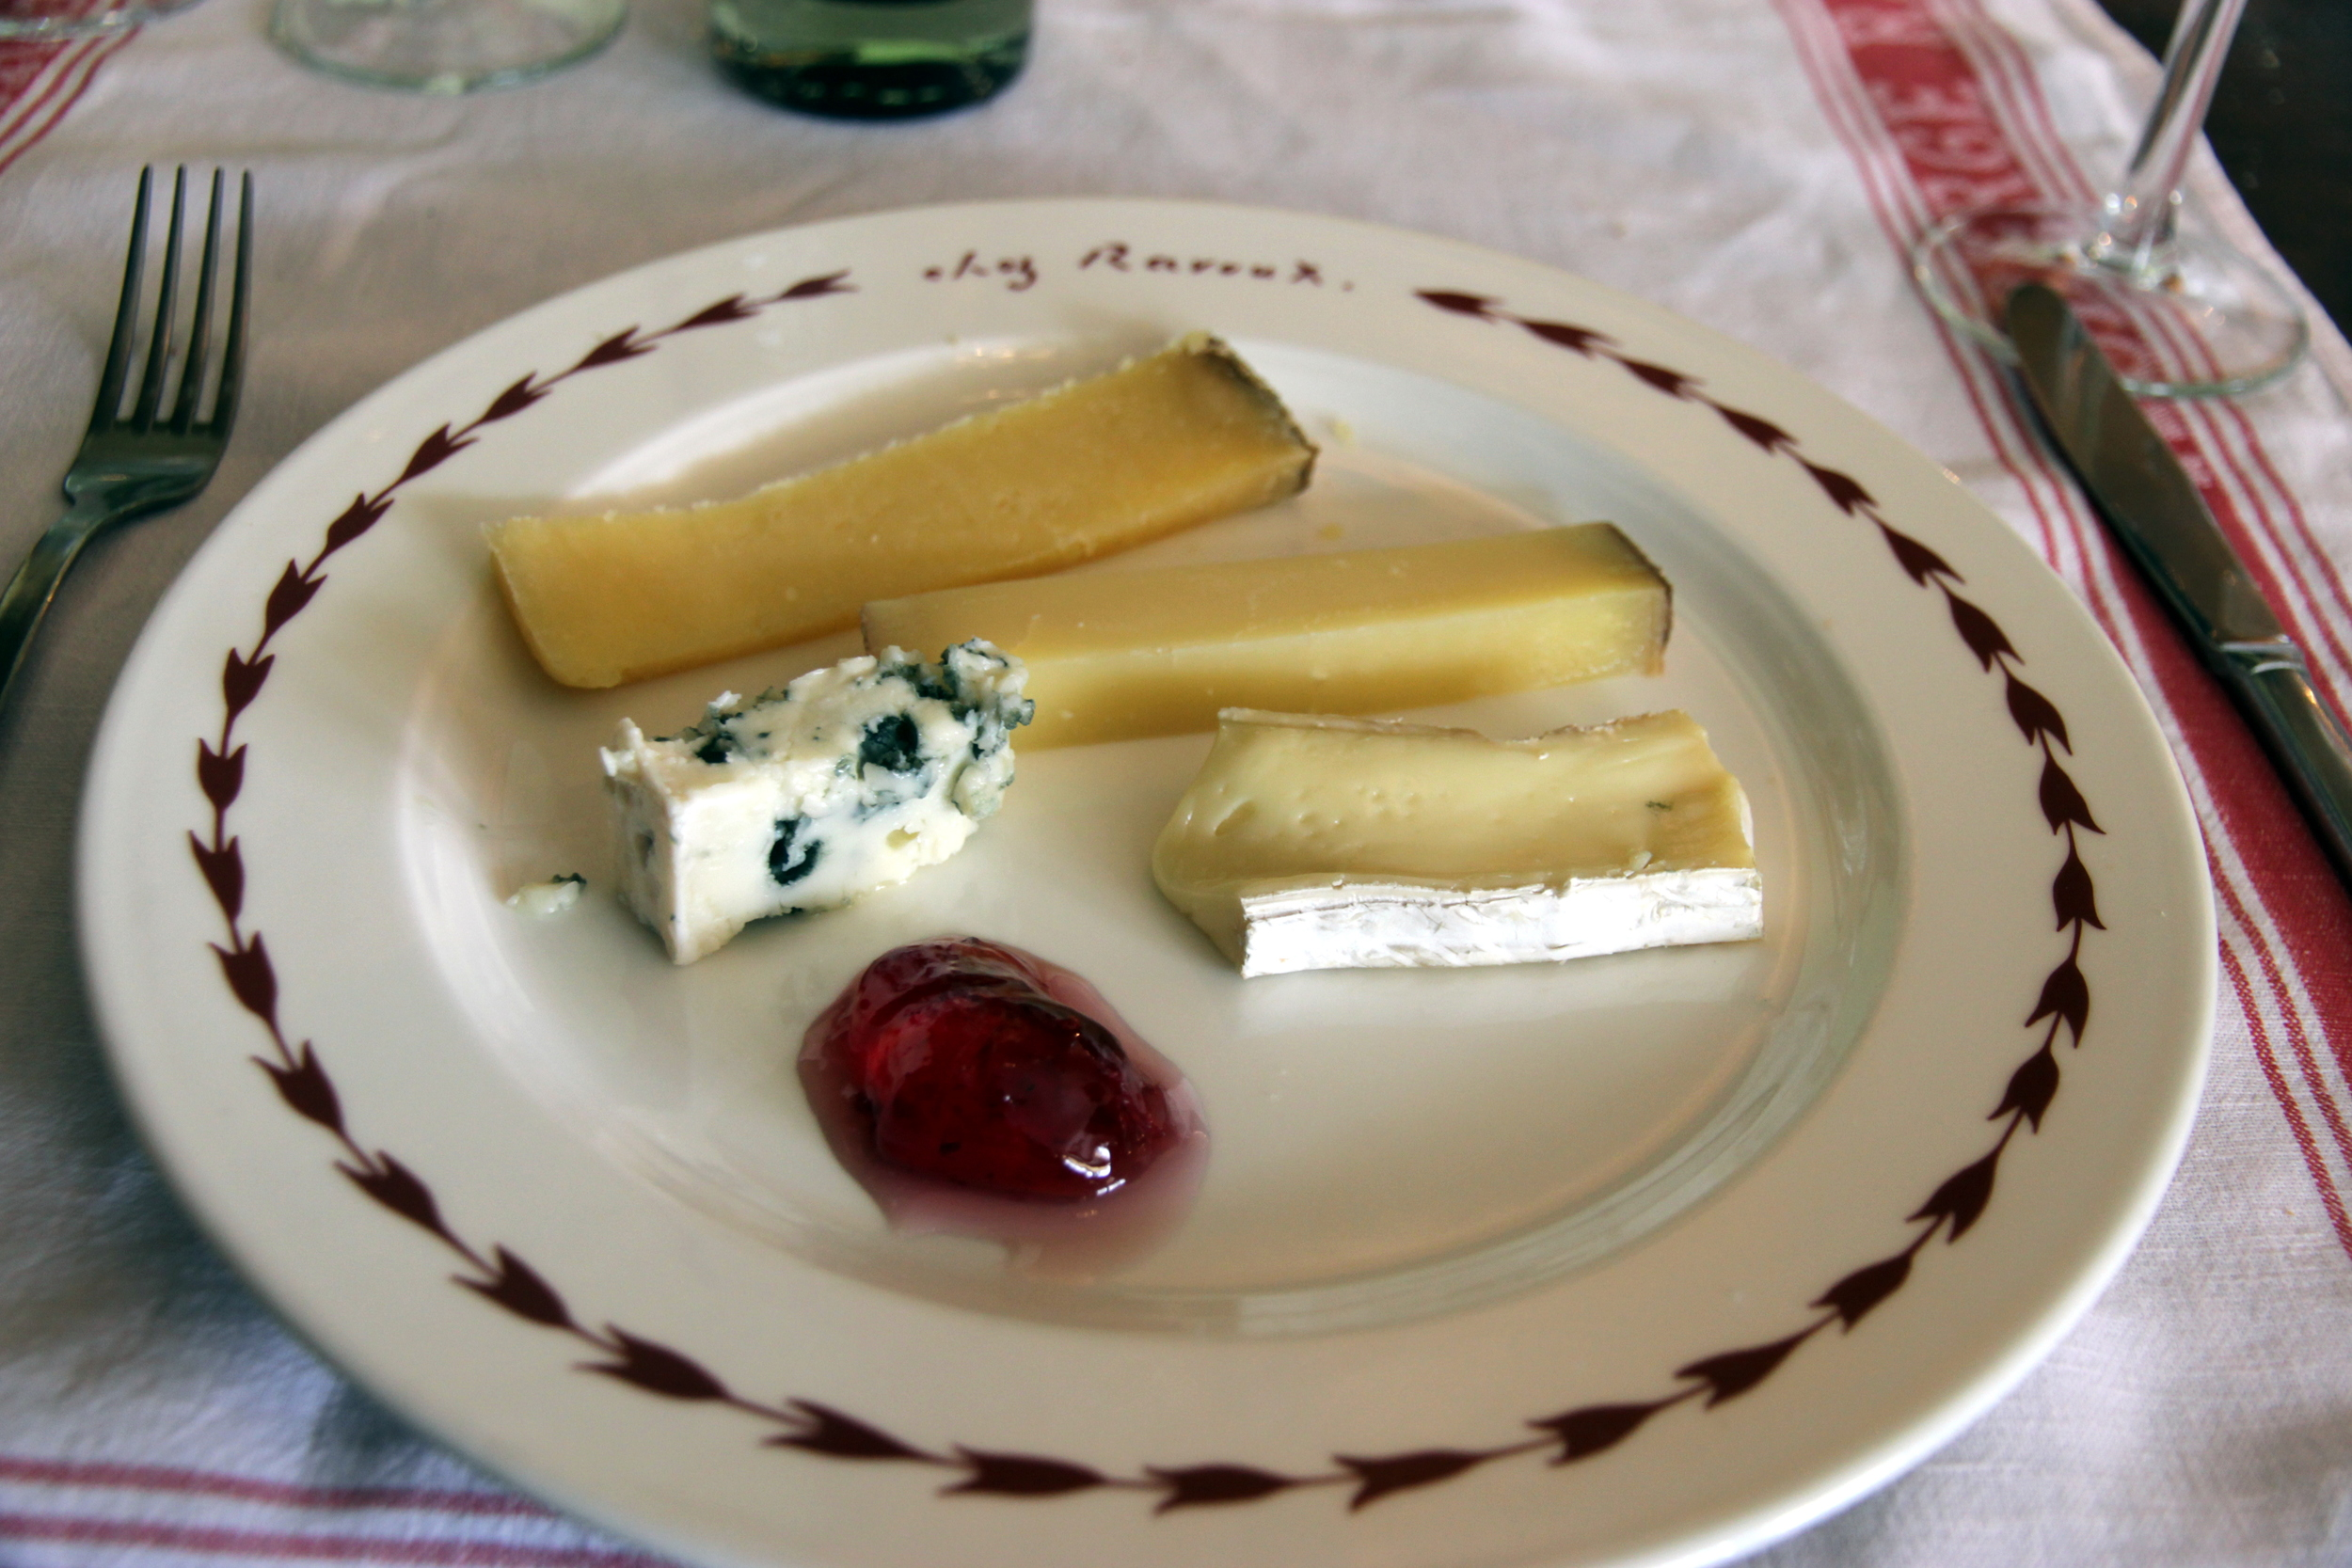 The cheese plate at the Auberge Ravoux (from south to north):  confit de coquelicot  (jelly made from wild poppies),  Roquefort Papillon  (left),  Brie de Meaux  (right),  Comté  (aged 12 months), and  Salers  (aged 18 months) /L'assiette du moment à L'Auberge Ravoux (du sud au nord) : confit de coquelicot, le Roquefort  Papillon  (gauche), le Brie de Meaux, le Comté (12 mois), le Salers (18 mois).